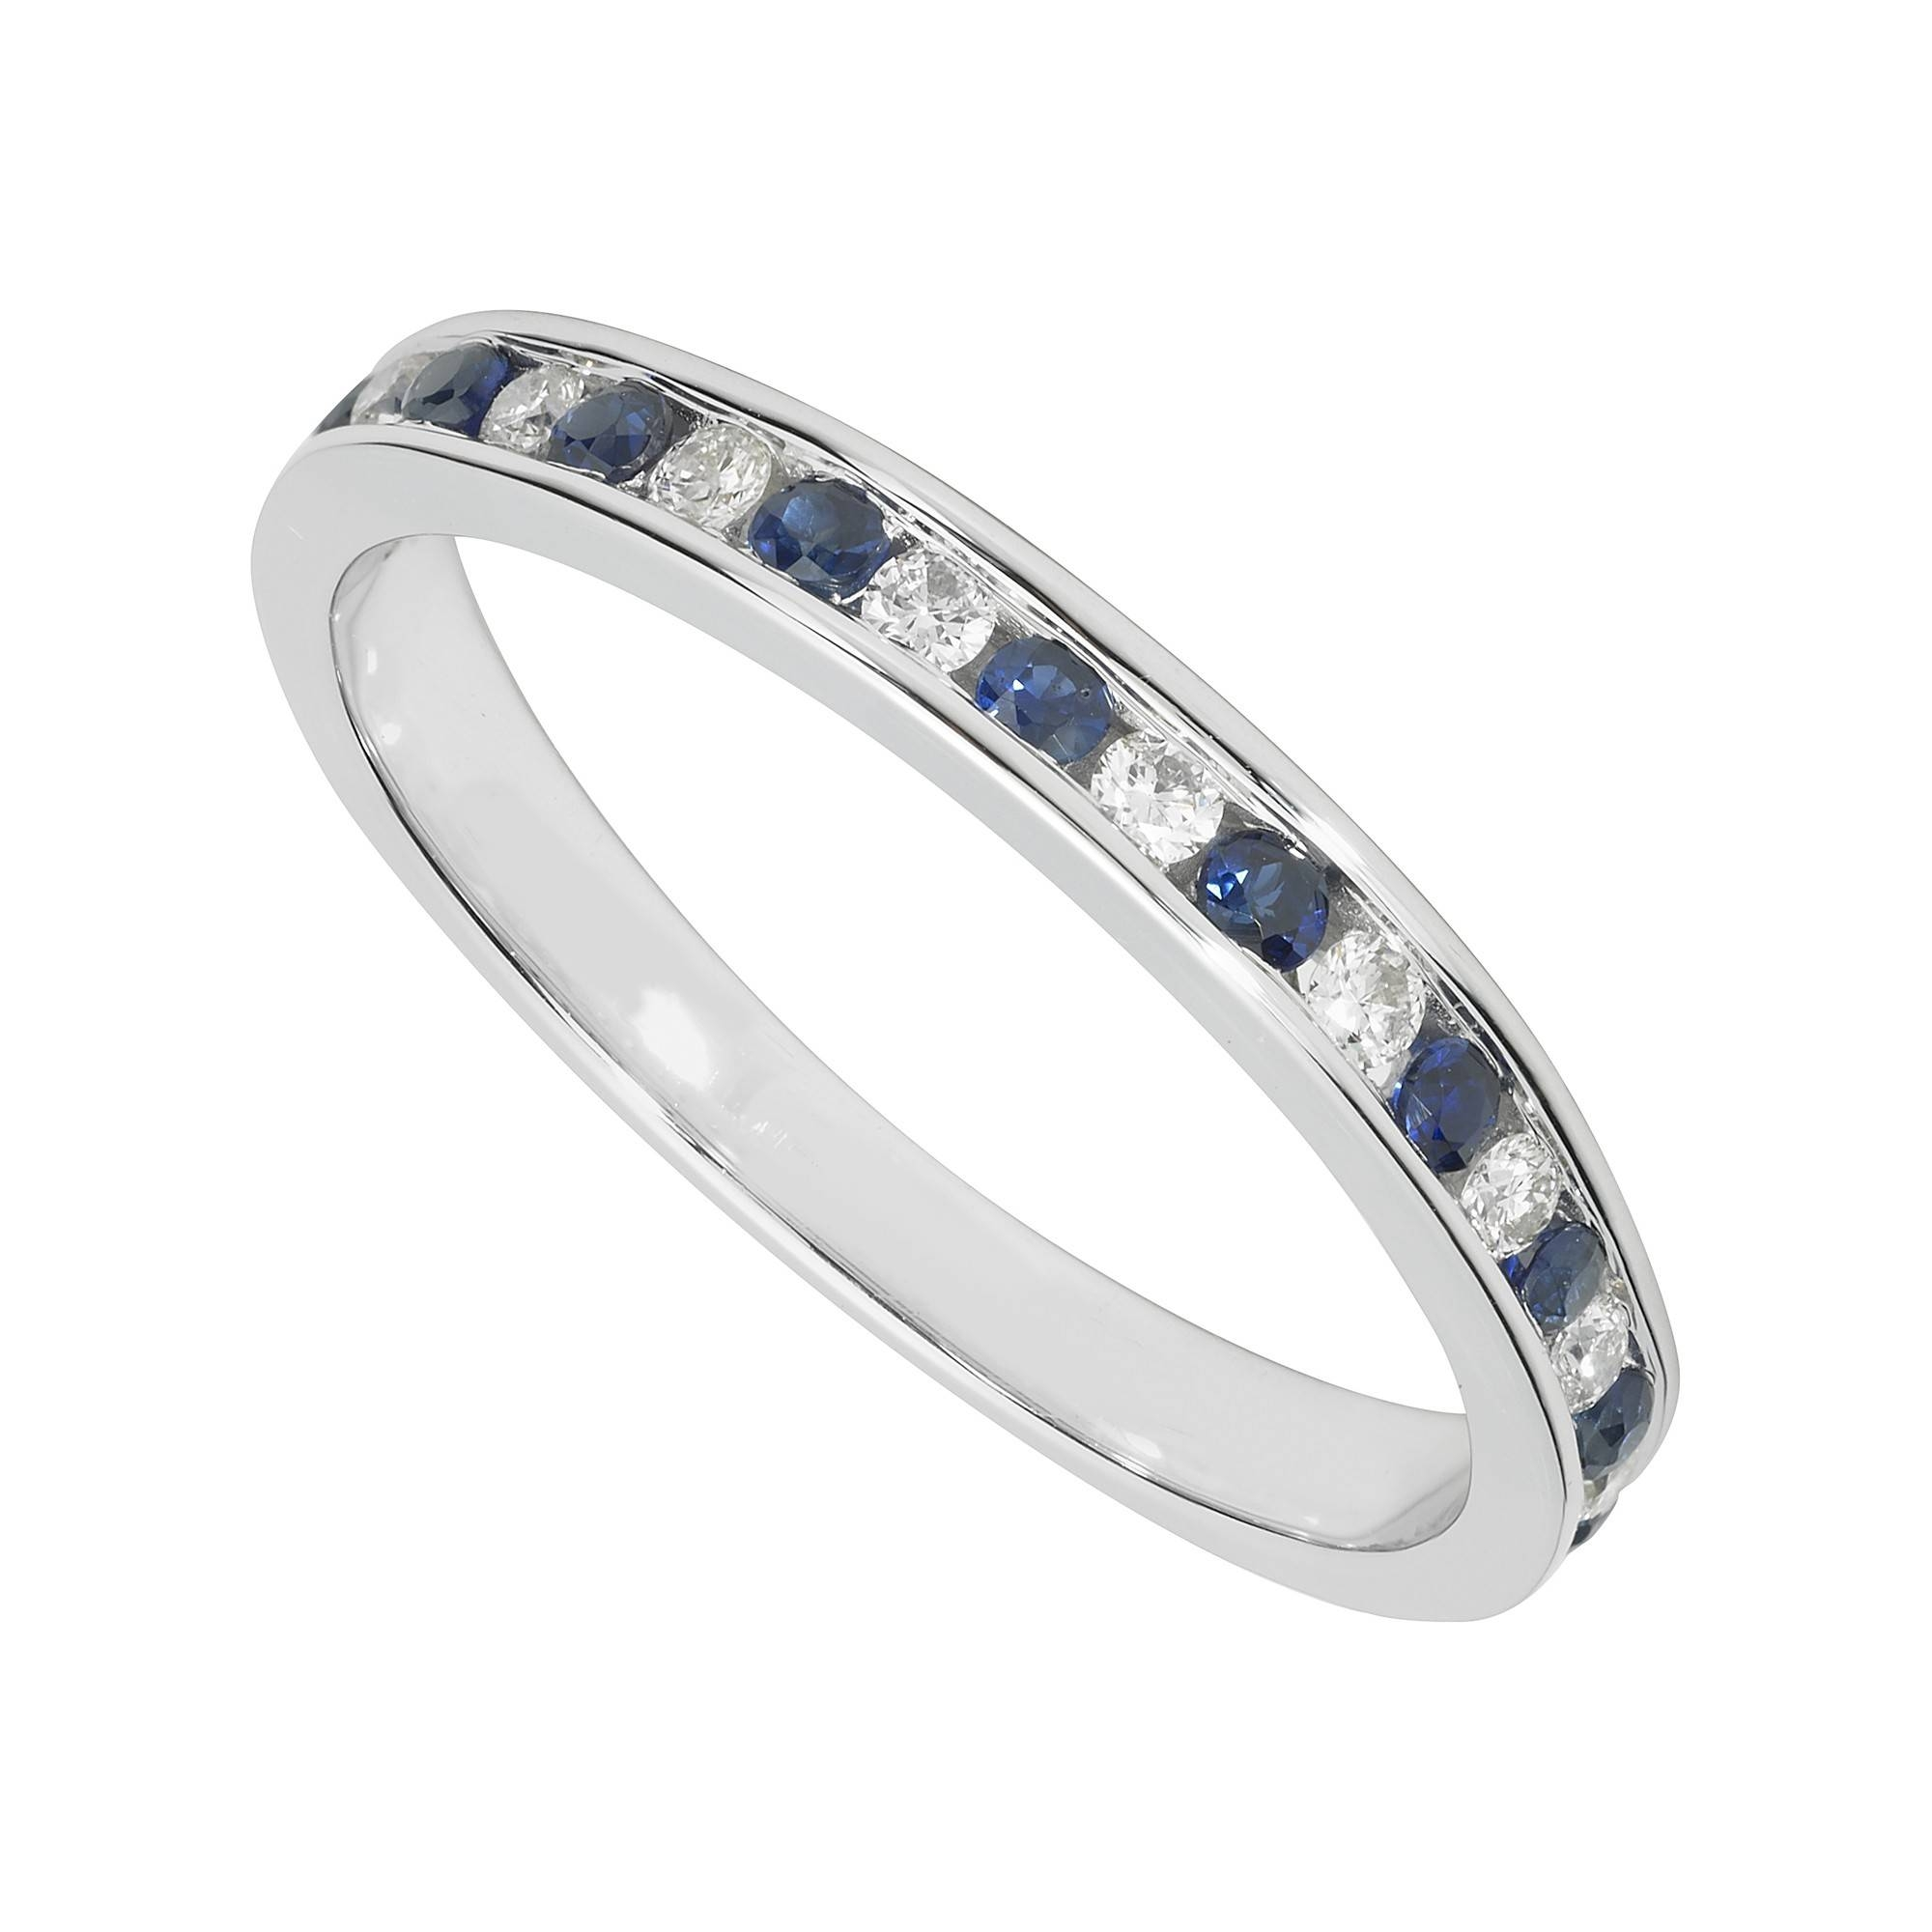 Ladies' 9Ct White Gold Diamond And Sapphire Wedding Ring Pertaining To Sapphire And Diamond Wedding Rings (Gallery 13 of 15)